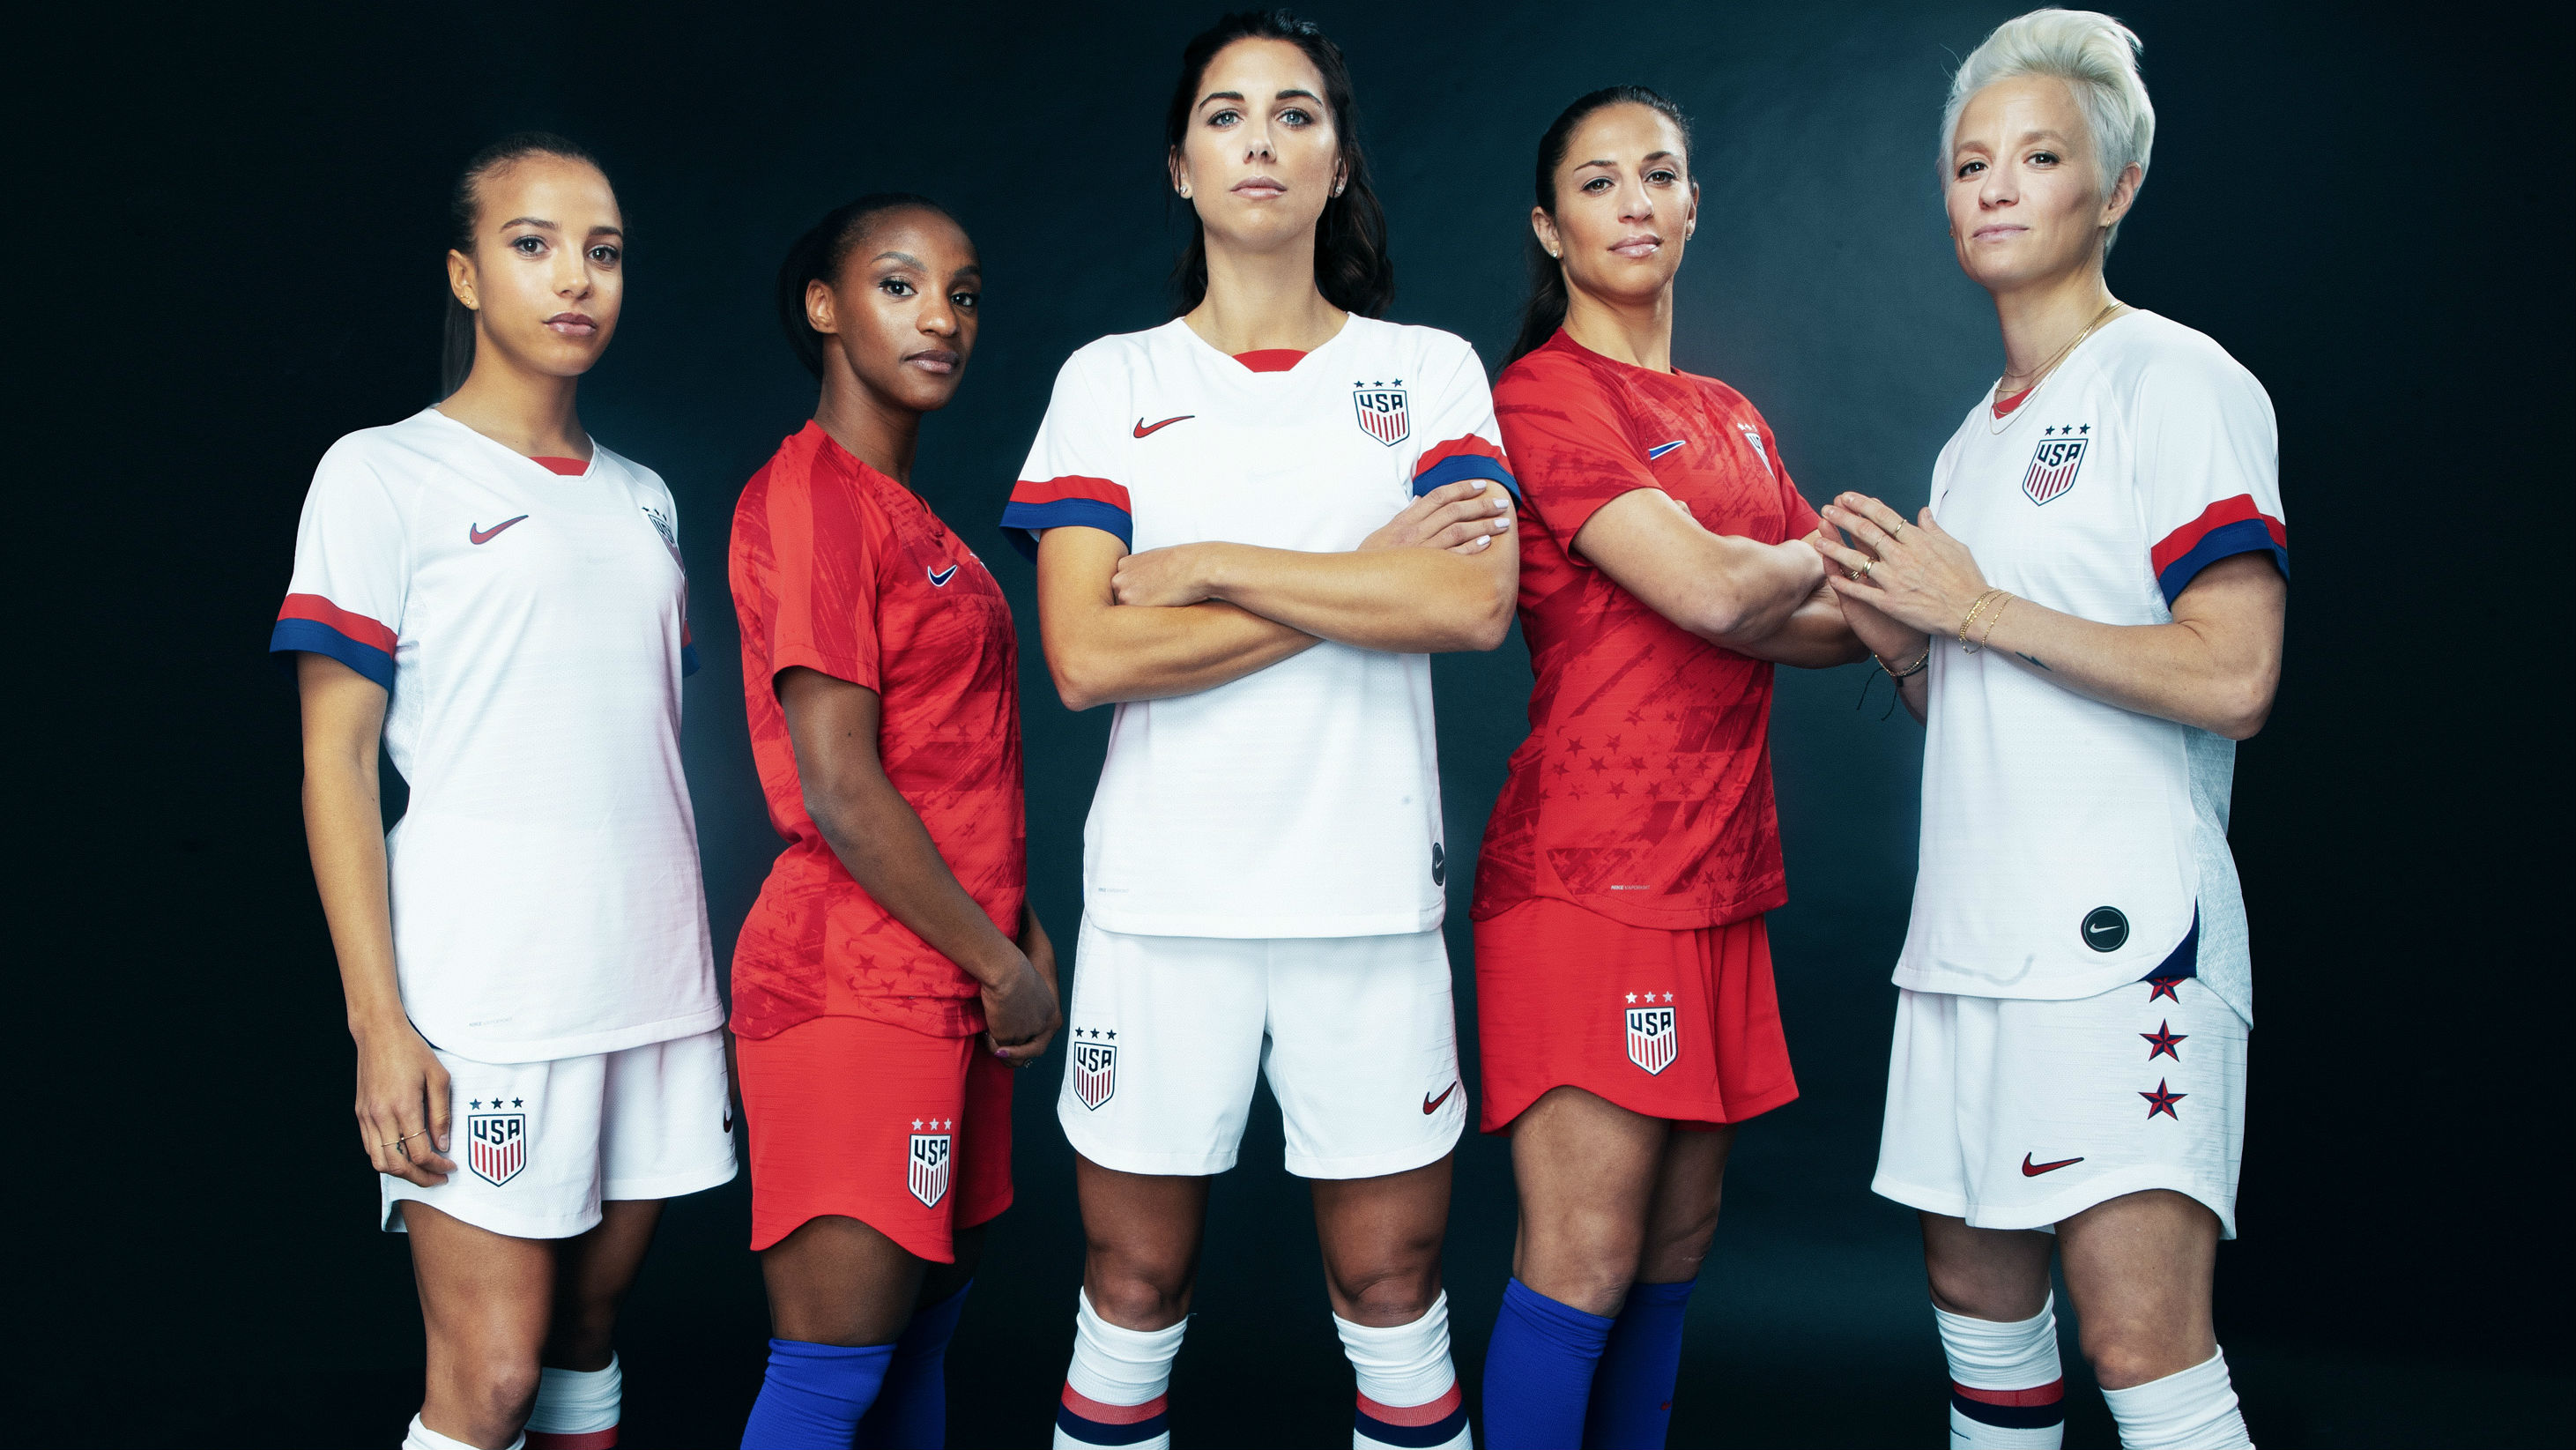 England women reveal bespoke new kit for 2019 World Cup